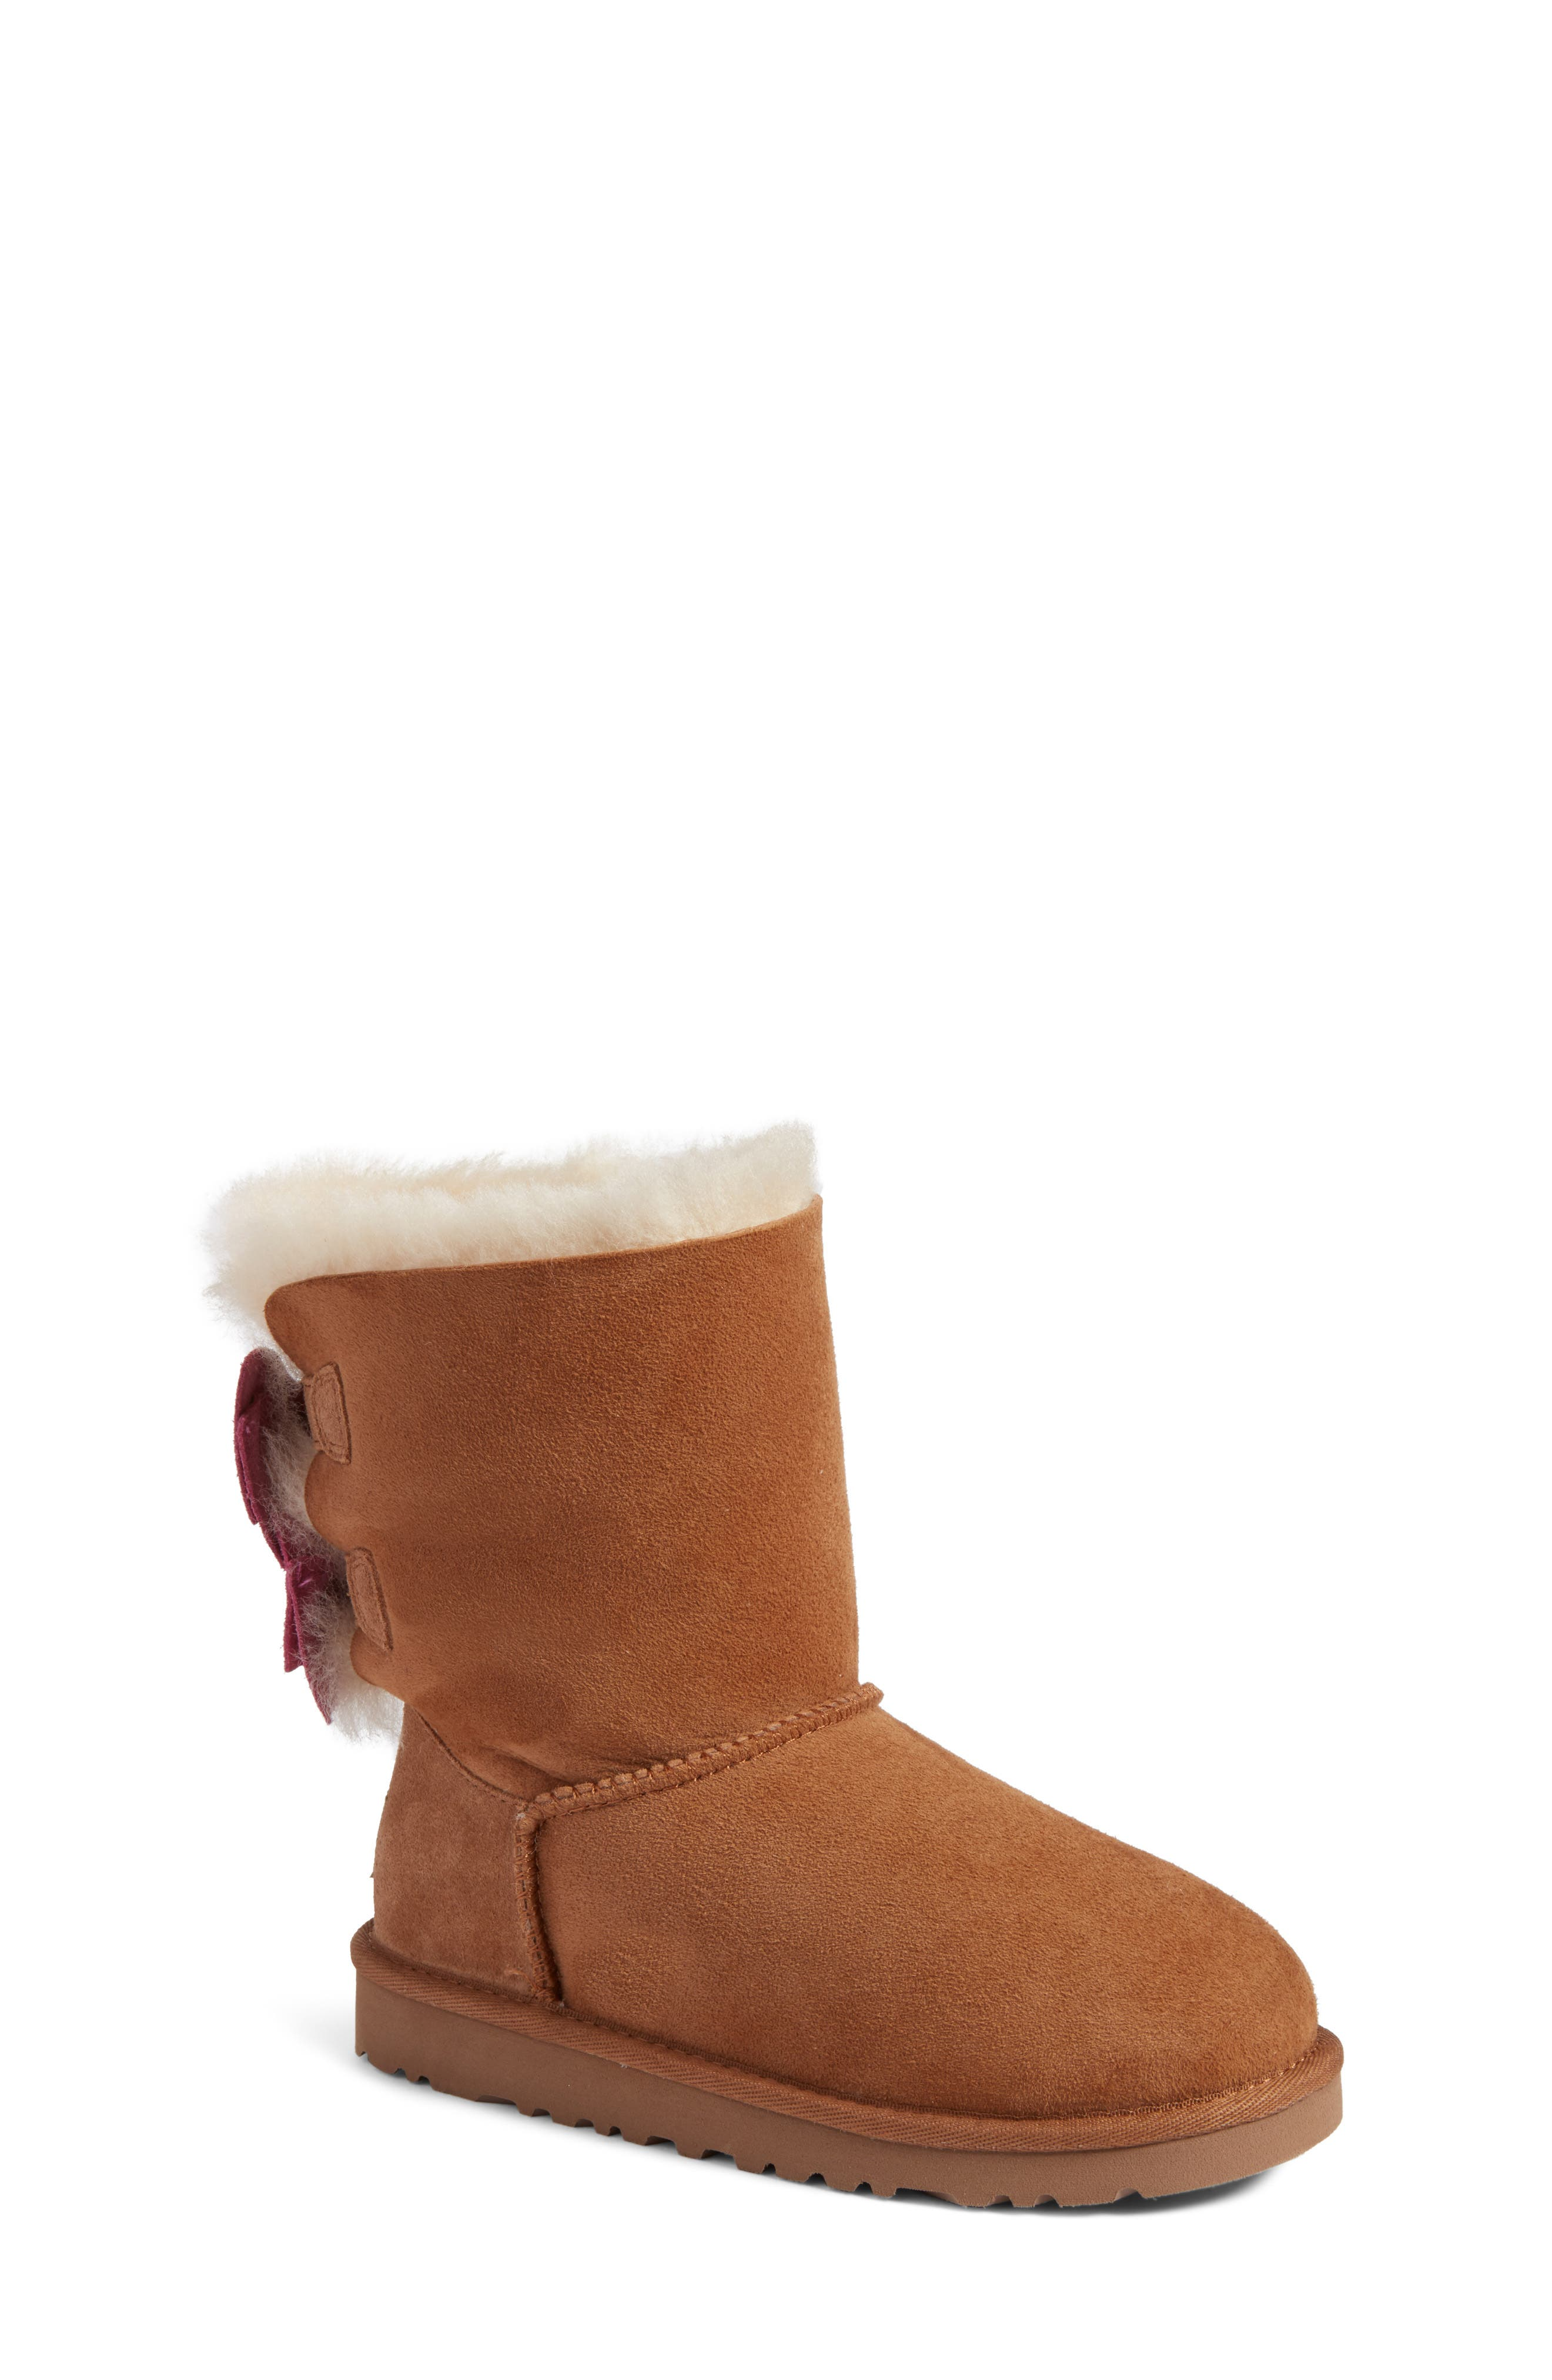 UGG® Meilani Dots Boot with Genuine Shearling (Walker, Toddler, Little Kid & Big Kid)